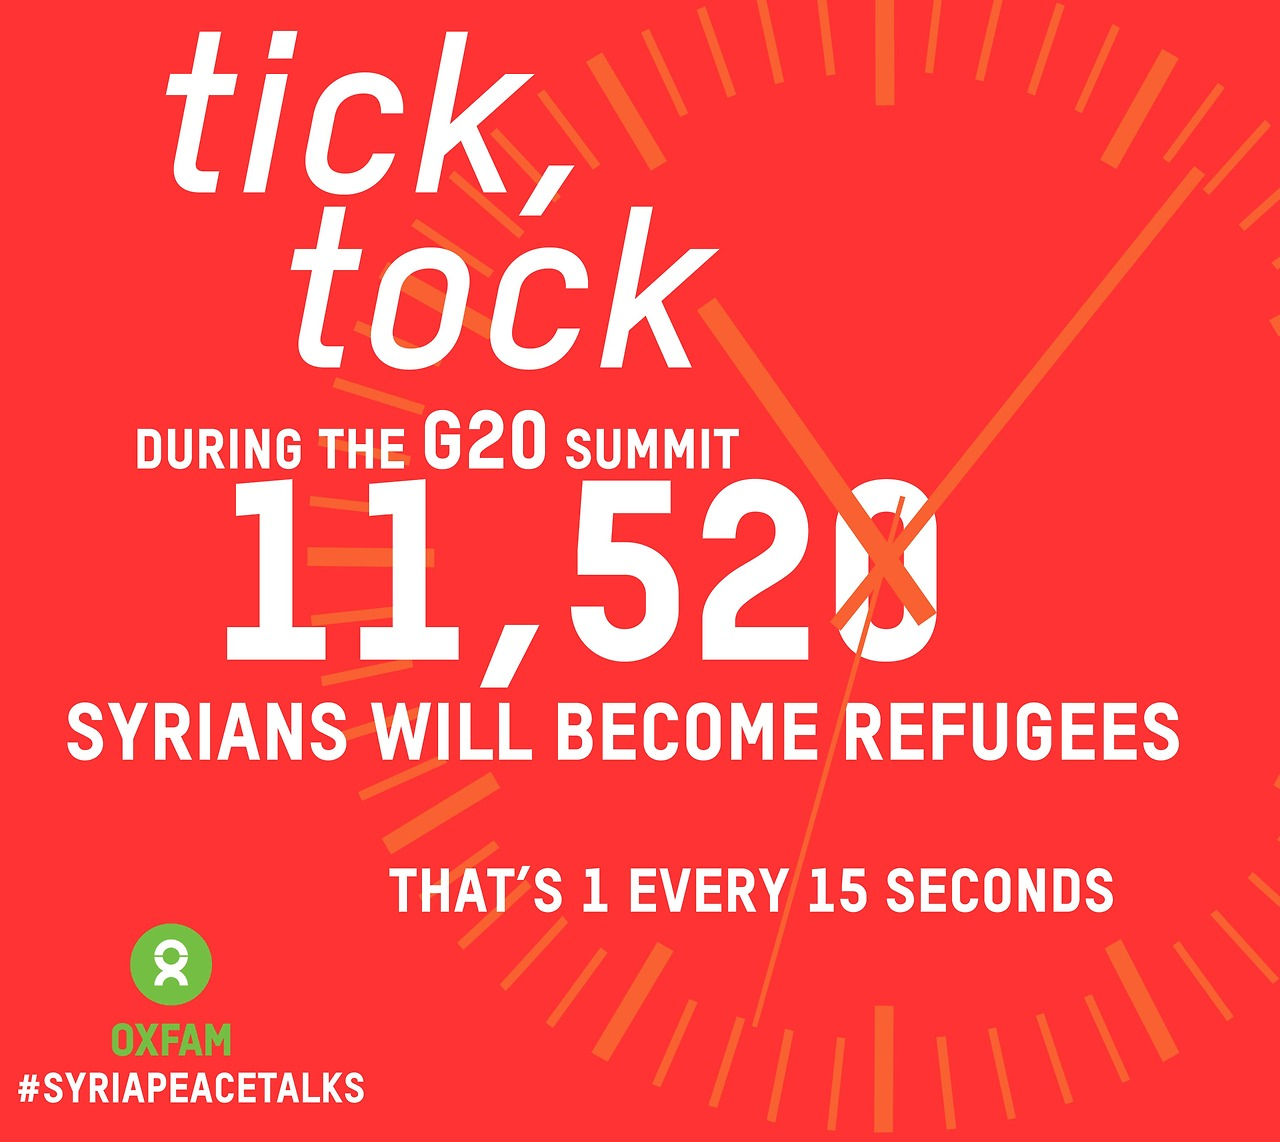 oxfamgb: Everyone's talking about #Syria at the #G20. But while they're talking, another Syrian becomes a refugee every fifteen seconds. That's more than 11,000 new refugees during the G20 alone. If you're outraged by this, please reblog and add your voice to our petition demanding peace talks now - TOGETHER we can make a difference. http://www.oxfam.org.uk/get-involved/campaign-with-us/find-an-action/syria-global-petition-to-obama-and-putin